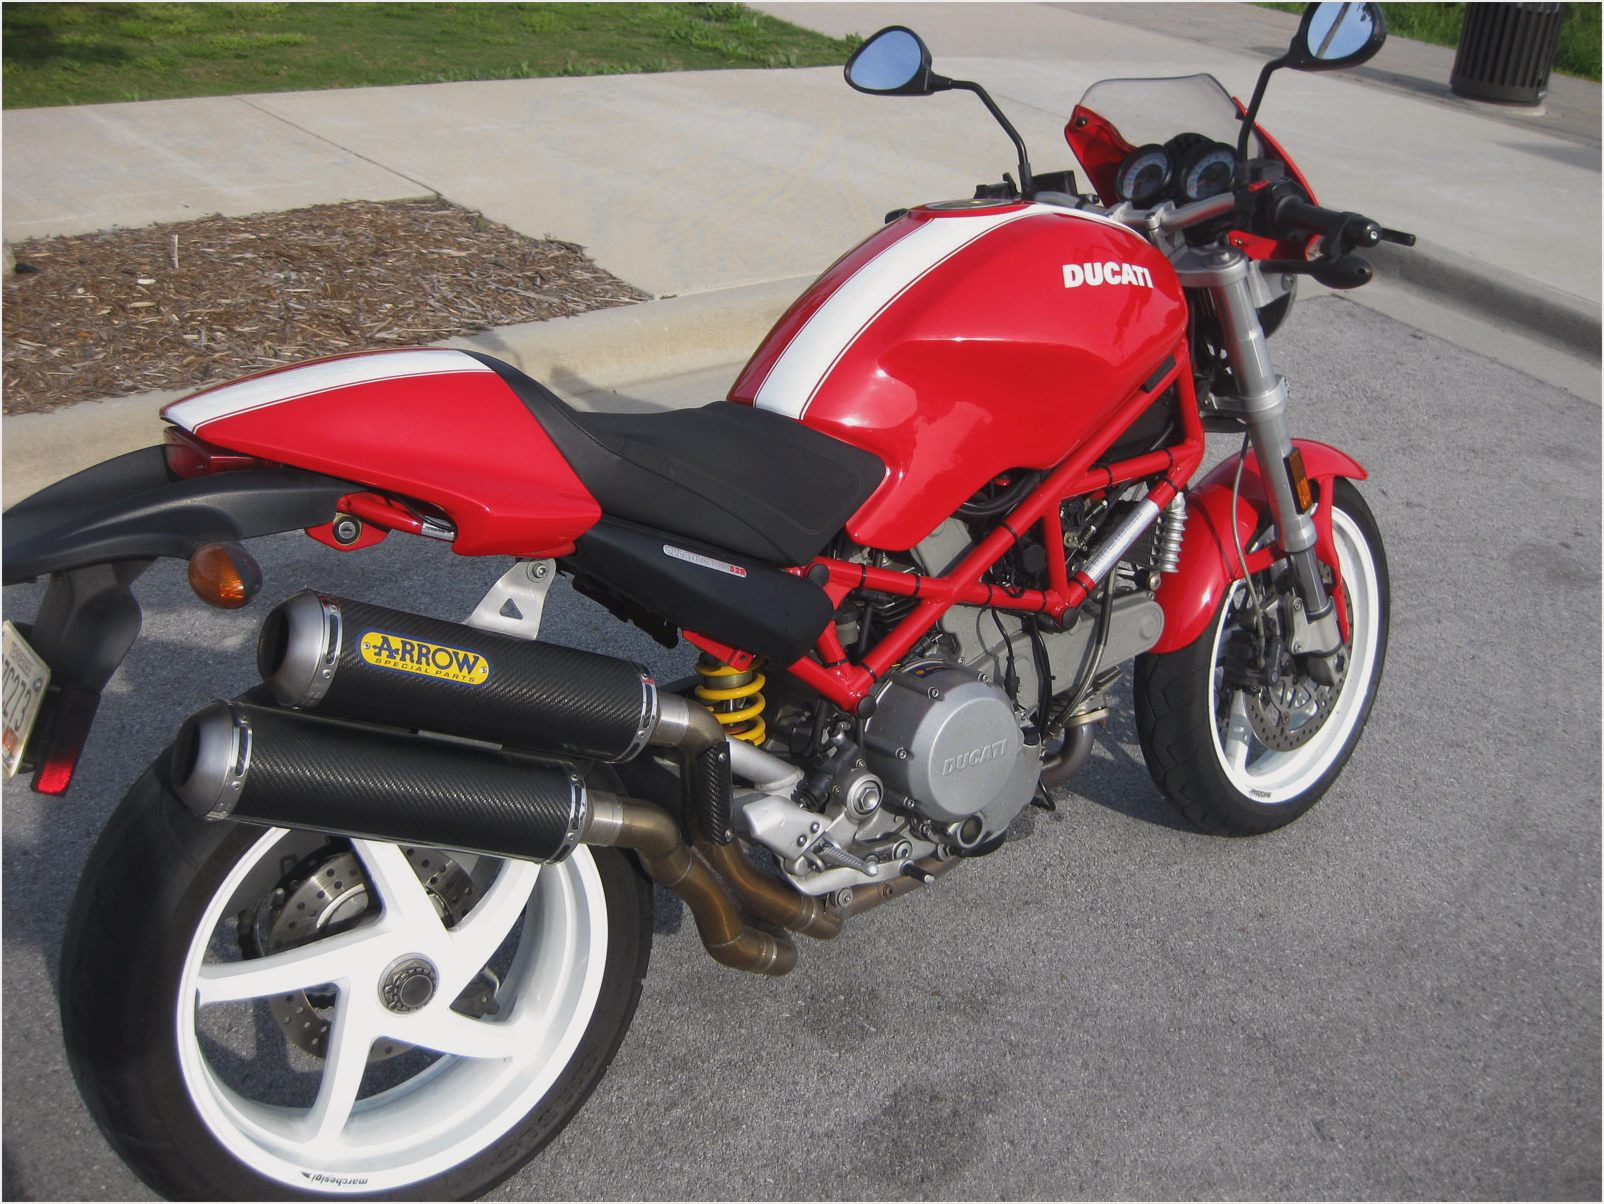 Ducati Monster 800 images #154663